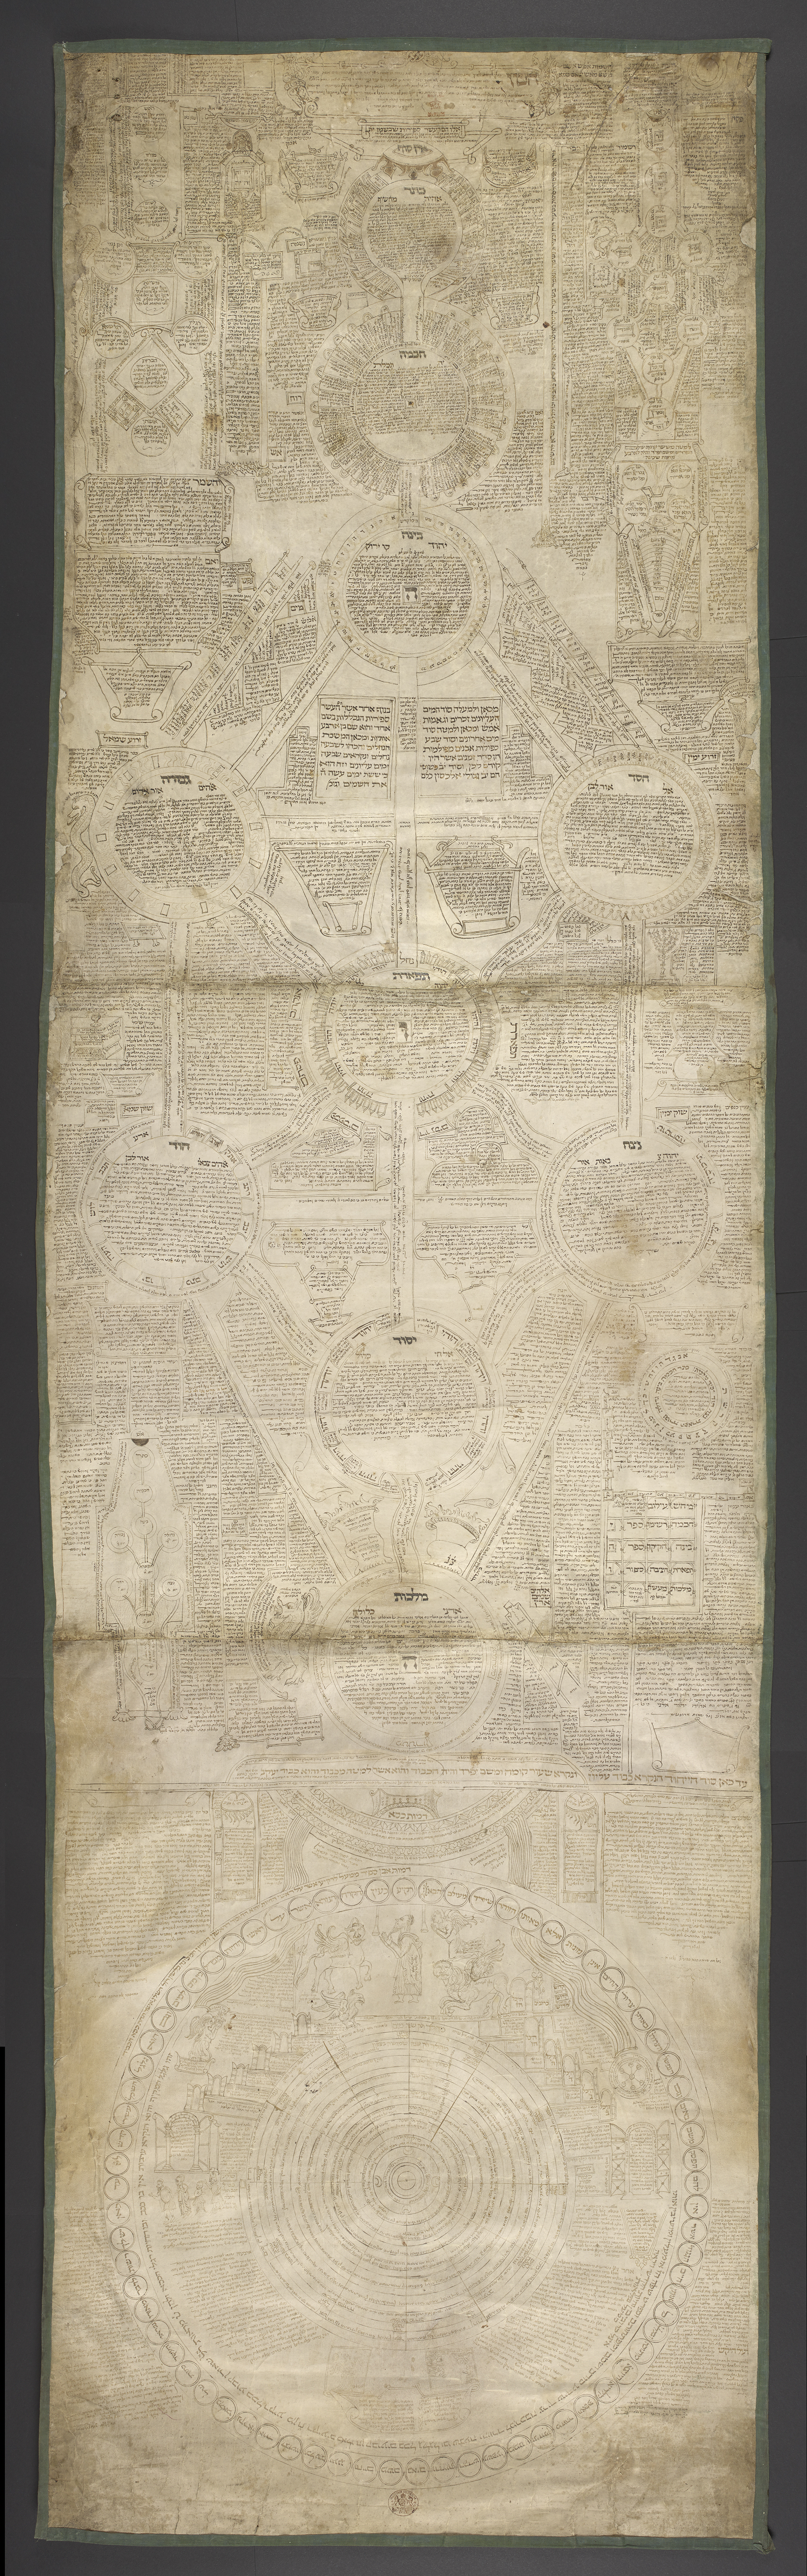 A cosmological map of the divine realm, Or 6465, Hebrew Manuscripts Digitisation Project, British Library